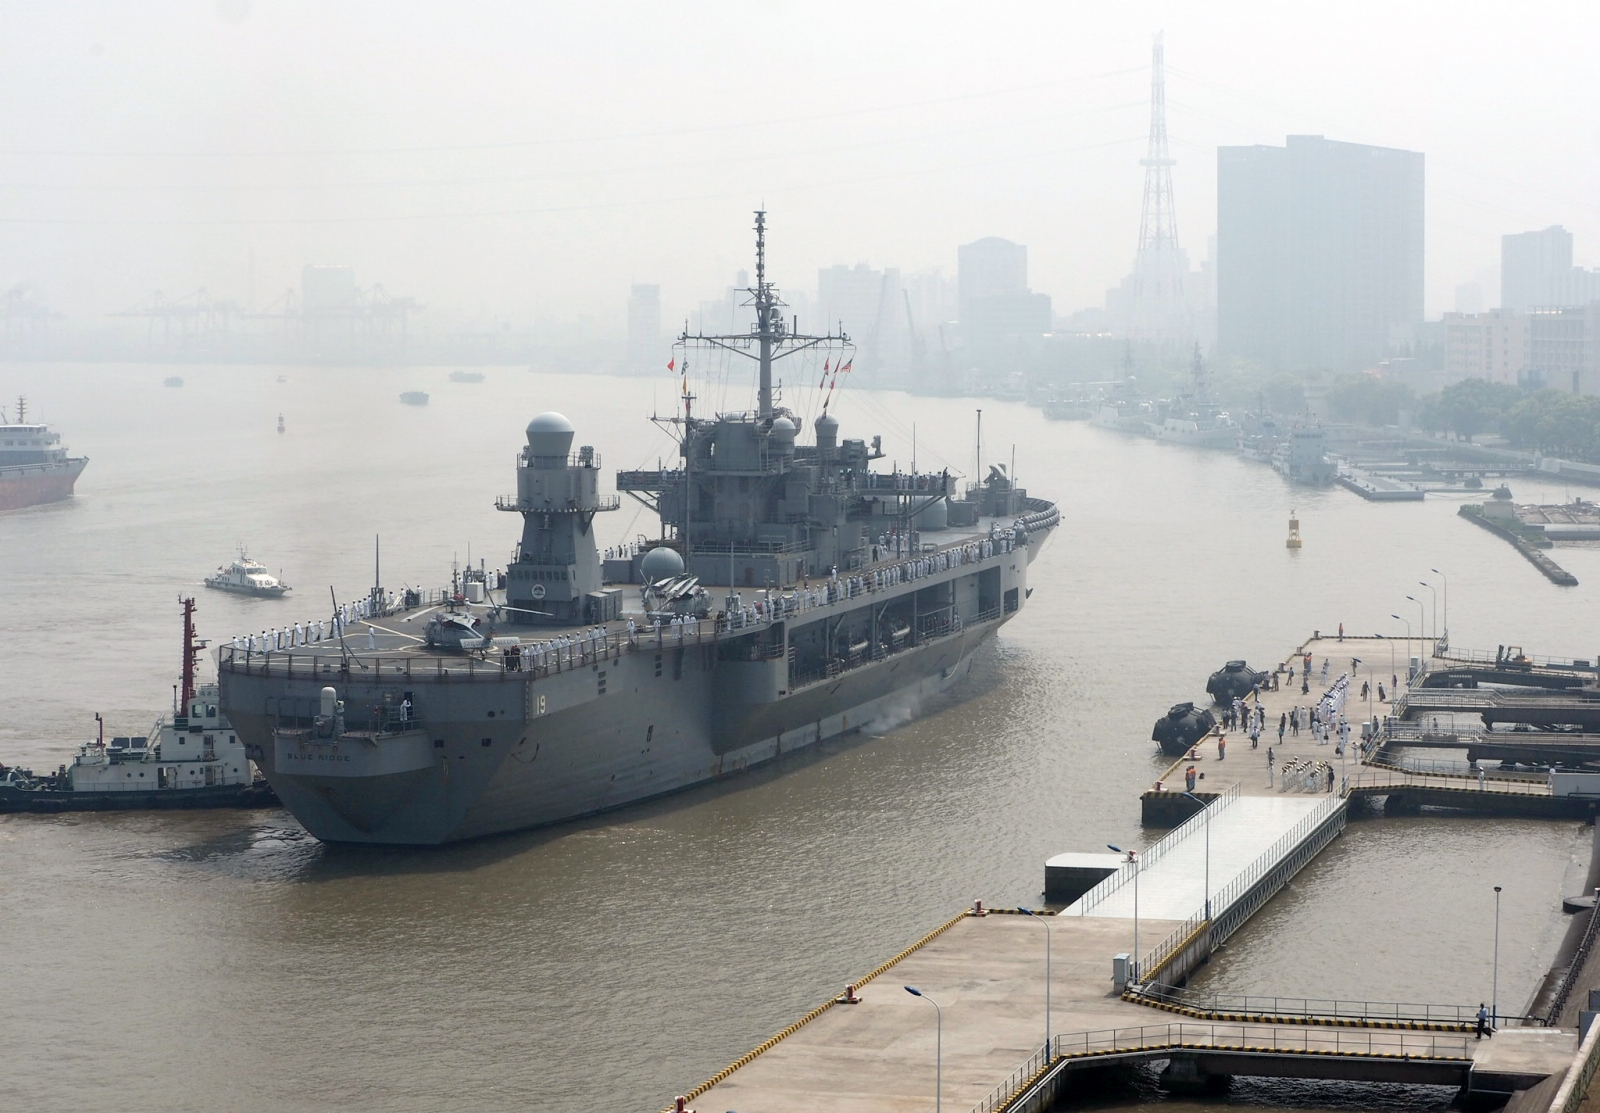 USS Blue Ridge in Shanghai